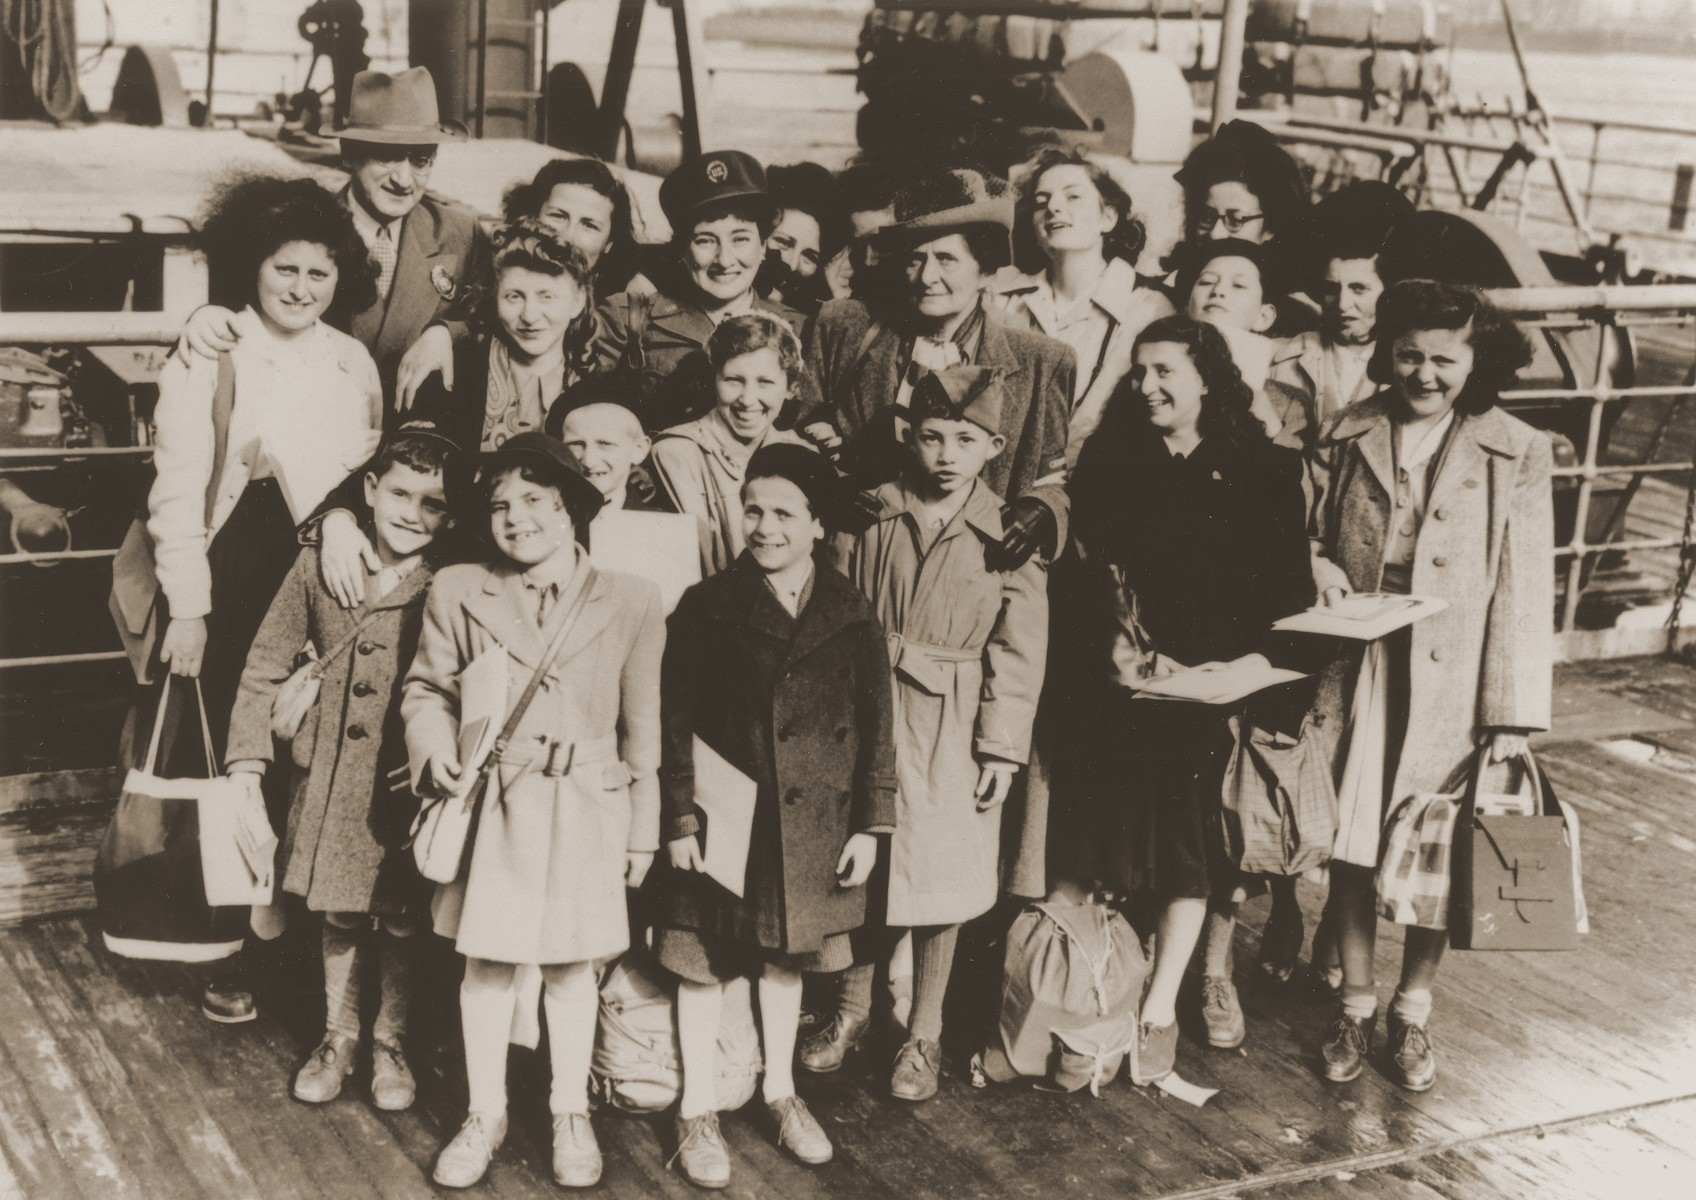 Photo journalist Ruth Gruber (center with cap) poses with a group of Jewish DPs who have just arrived from Europe.  Also pictured are Anneliese Kohn (back row, face partially obscured); siblings Sima (second row, second from right), David and Asher (front row, third from left) Halberstam; siblings Leo and Berthe Dreyfuss (front row, first and second from left).